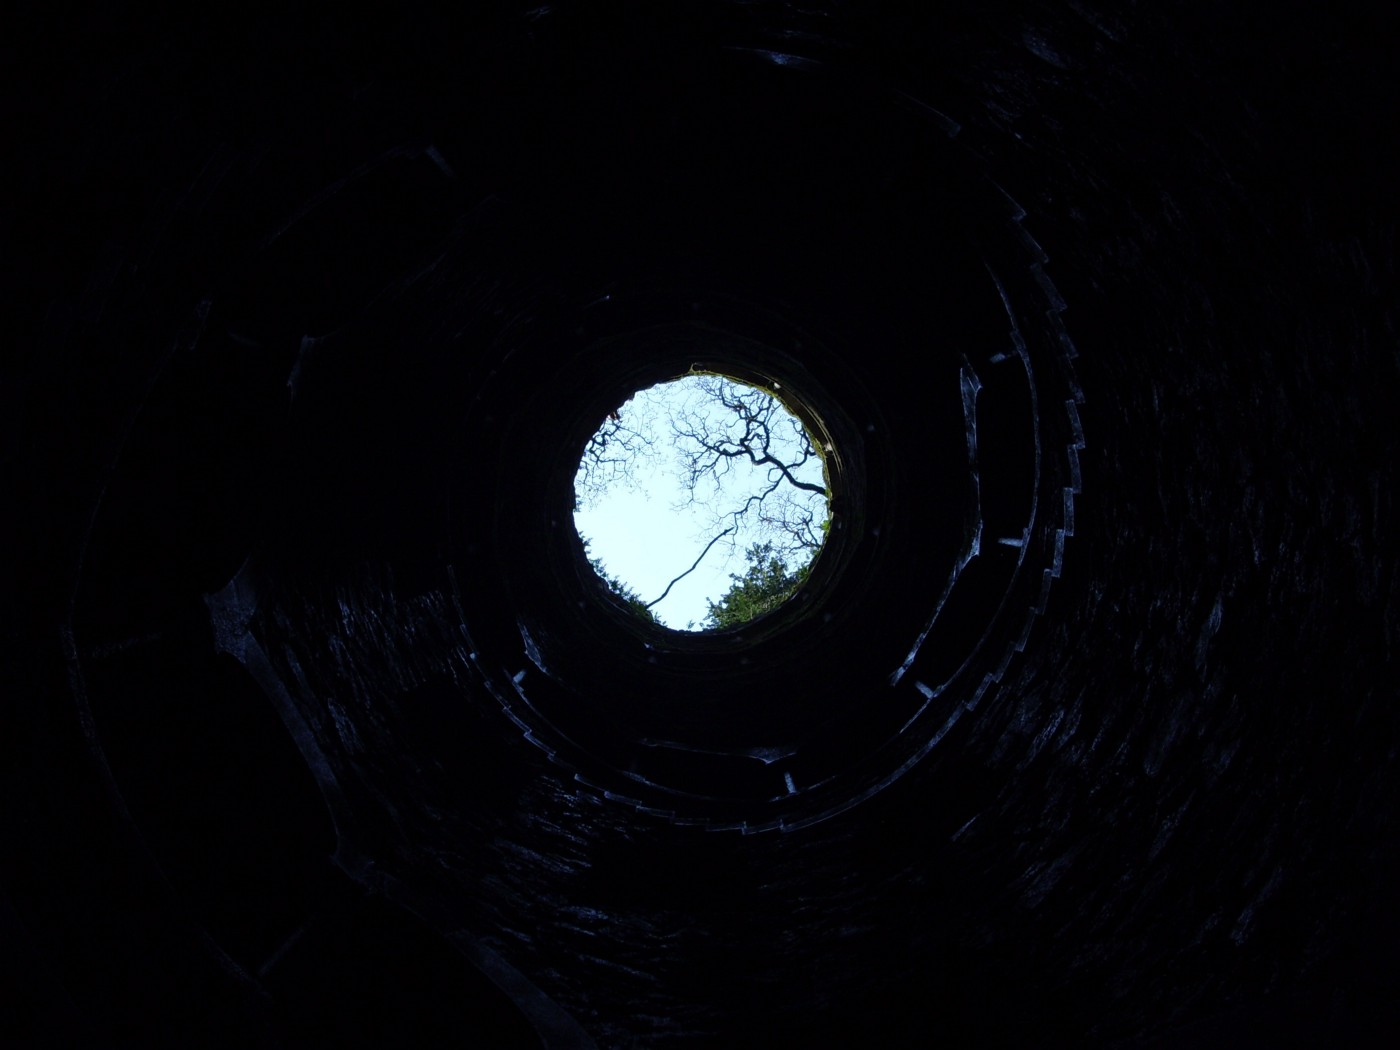 Photograph looking up from the bottom of a deep, dark hole. The sky and trees are visible, but far away.